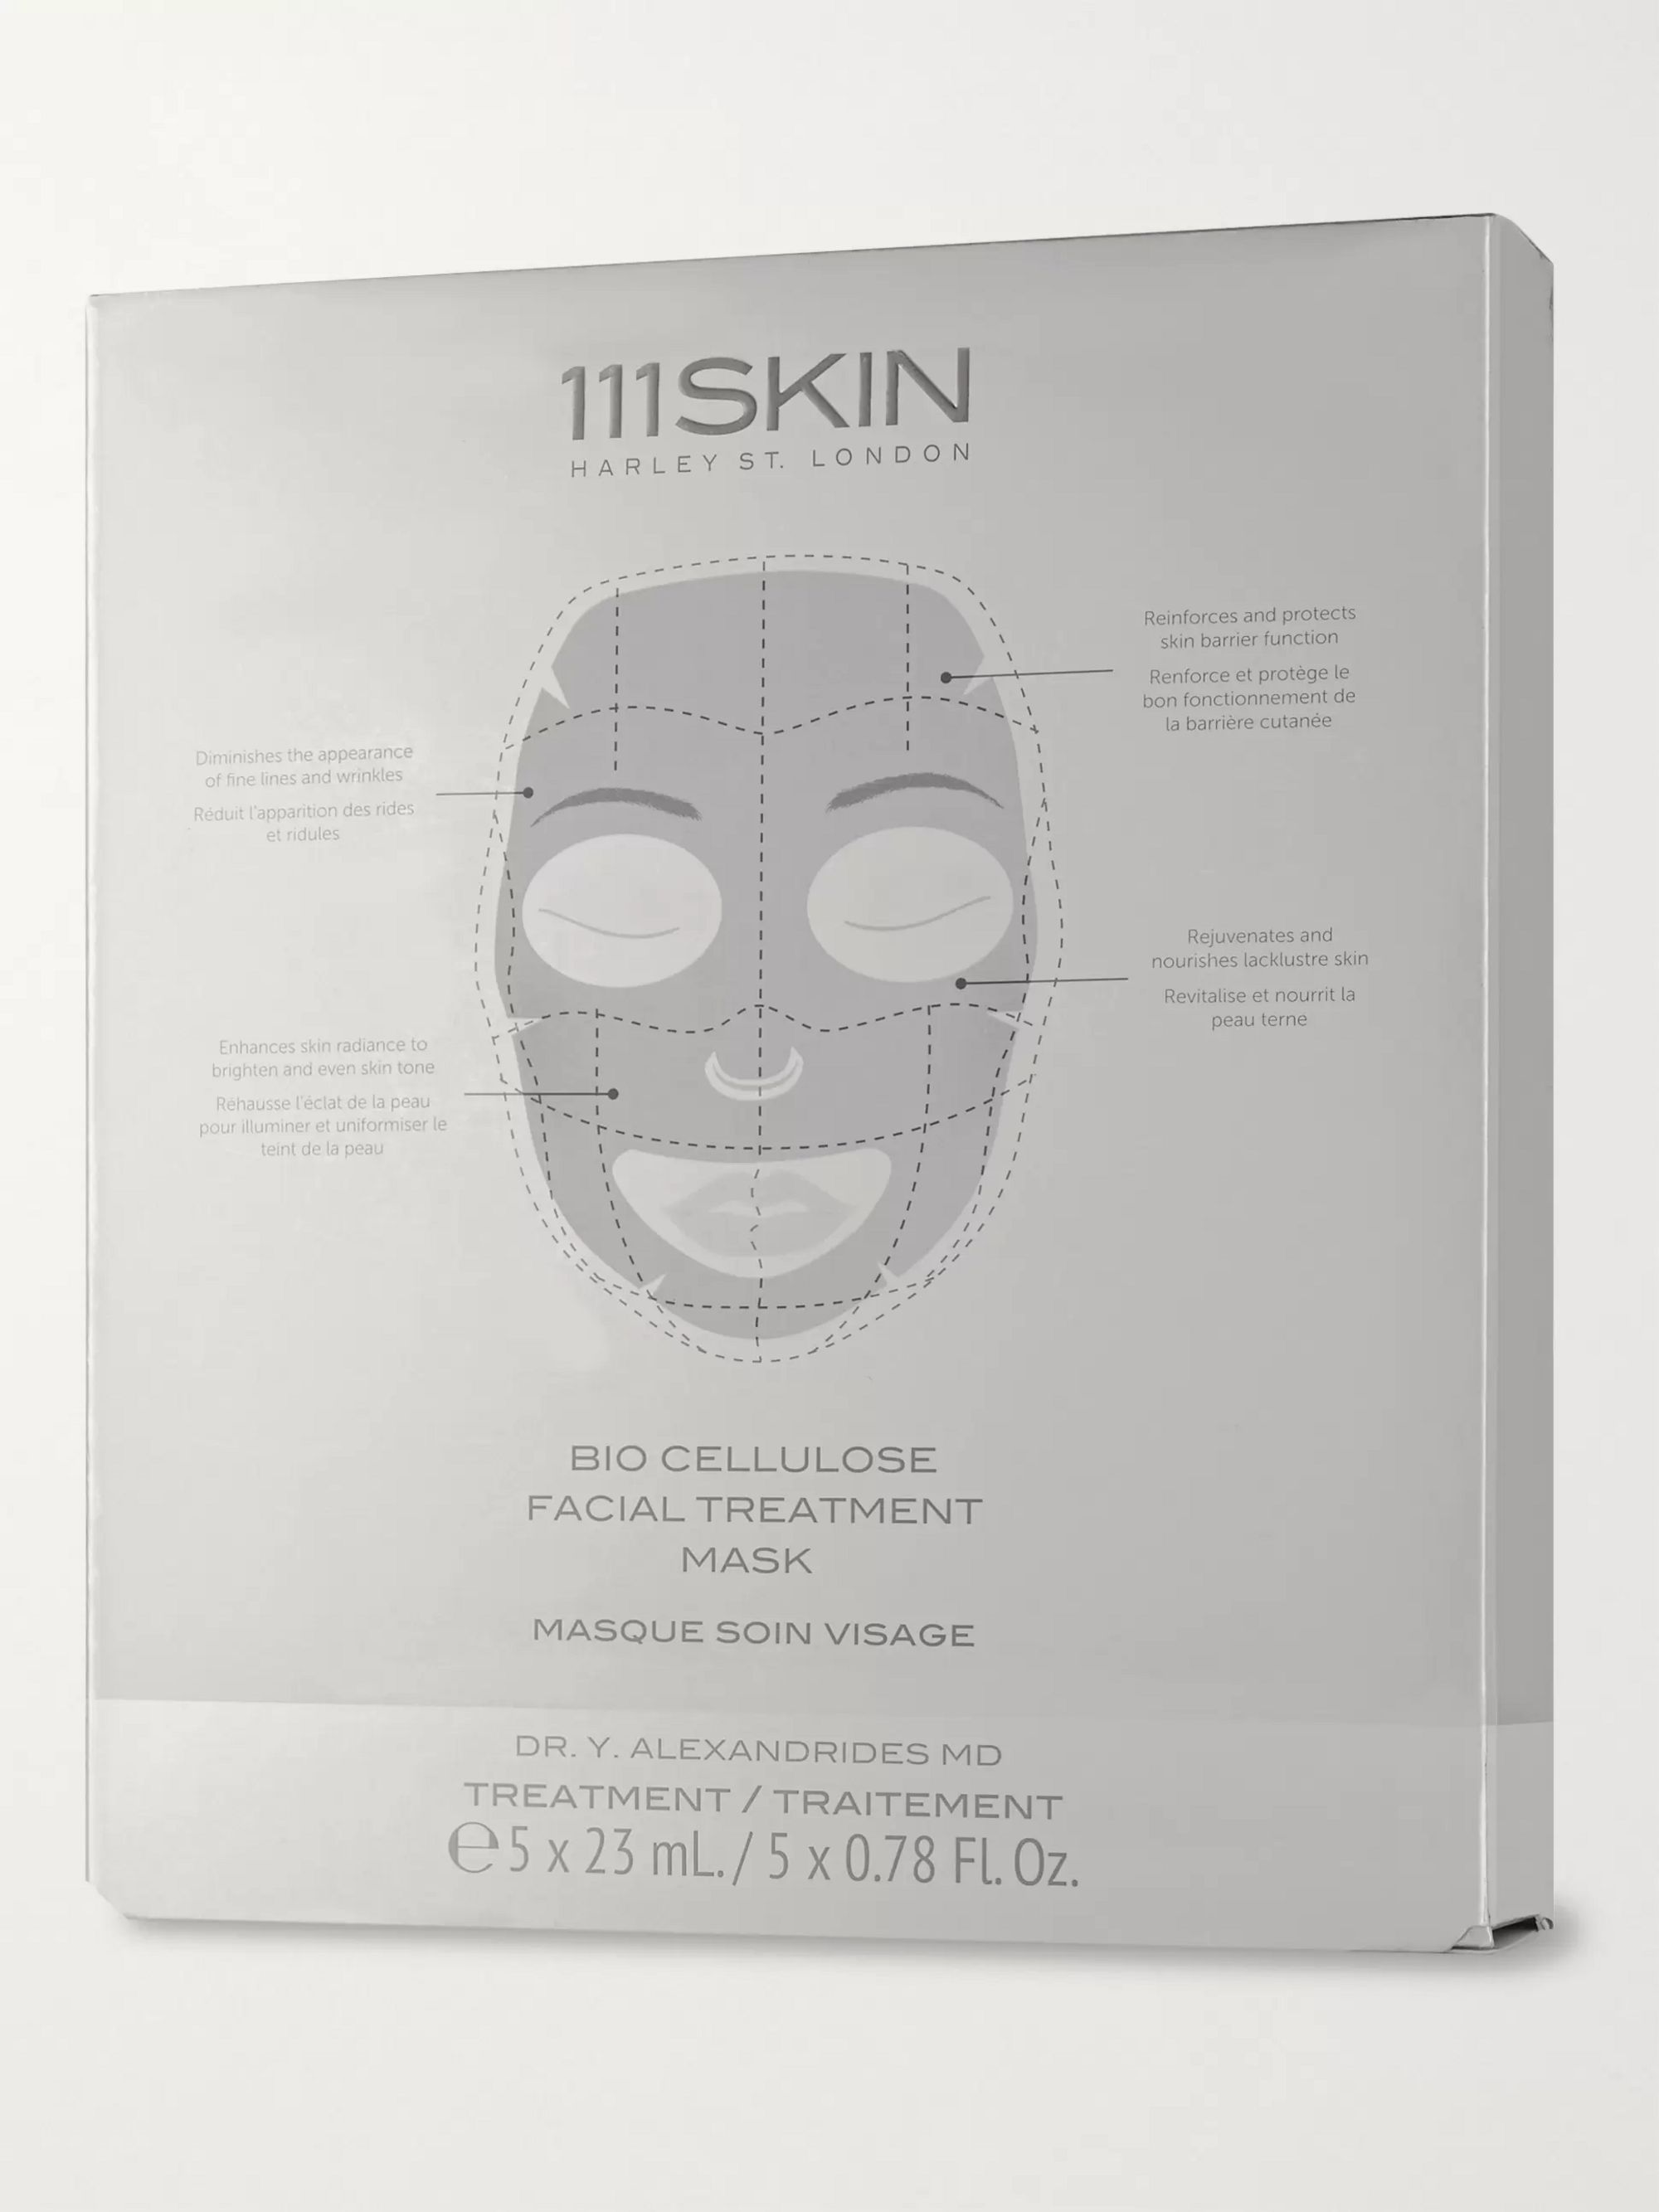 111SKIN Bio Cellulose Facial Treatment Mask, 5 x 23ml